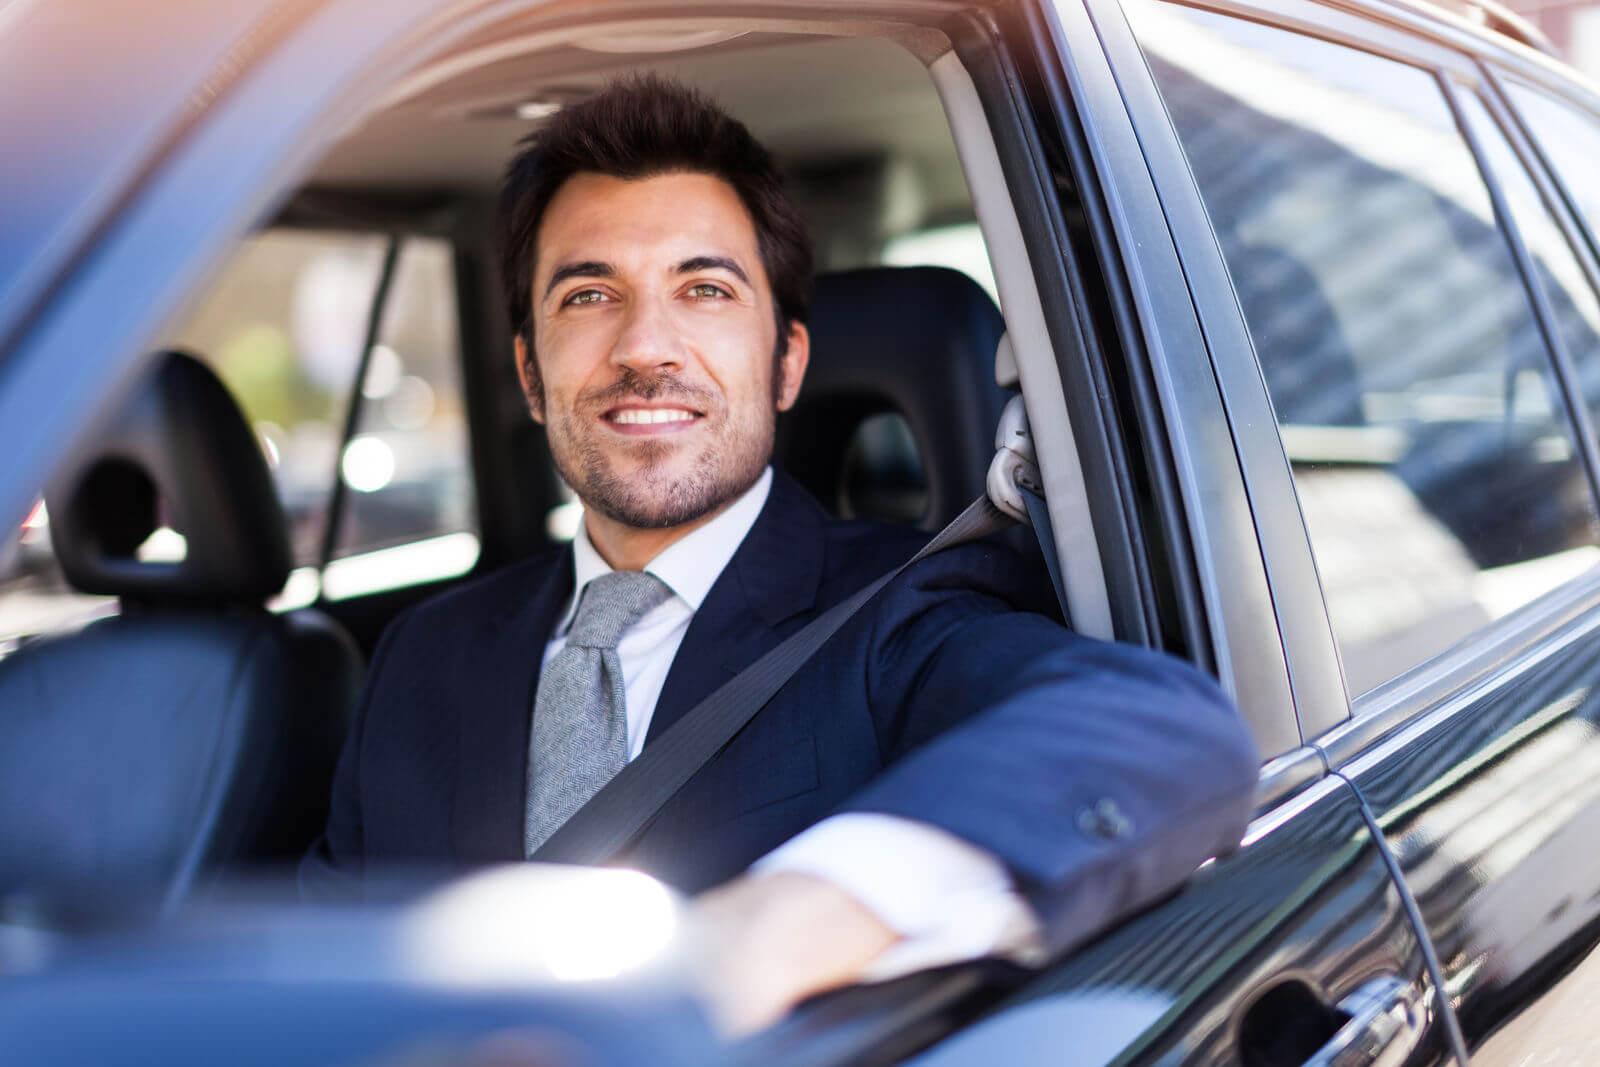 5 Things to Know Before Buying Auto Insurance